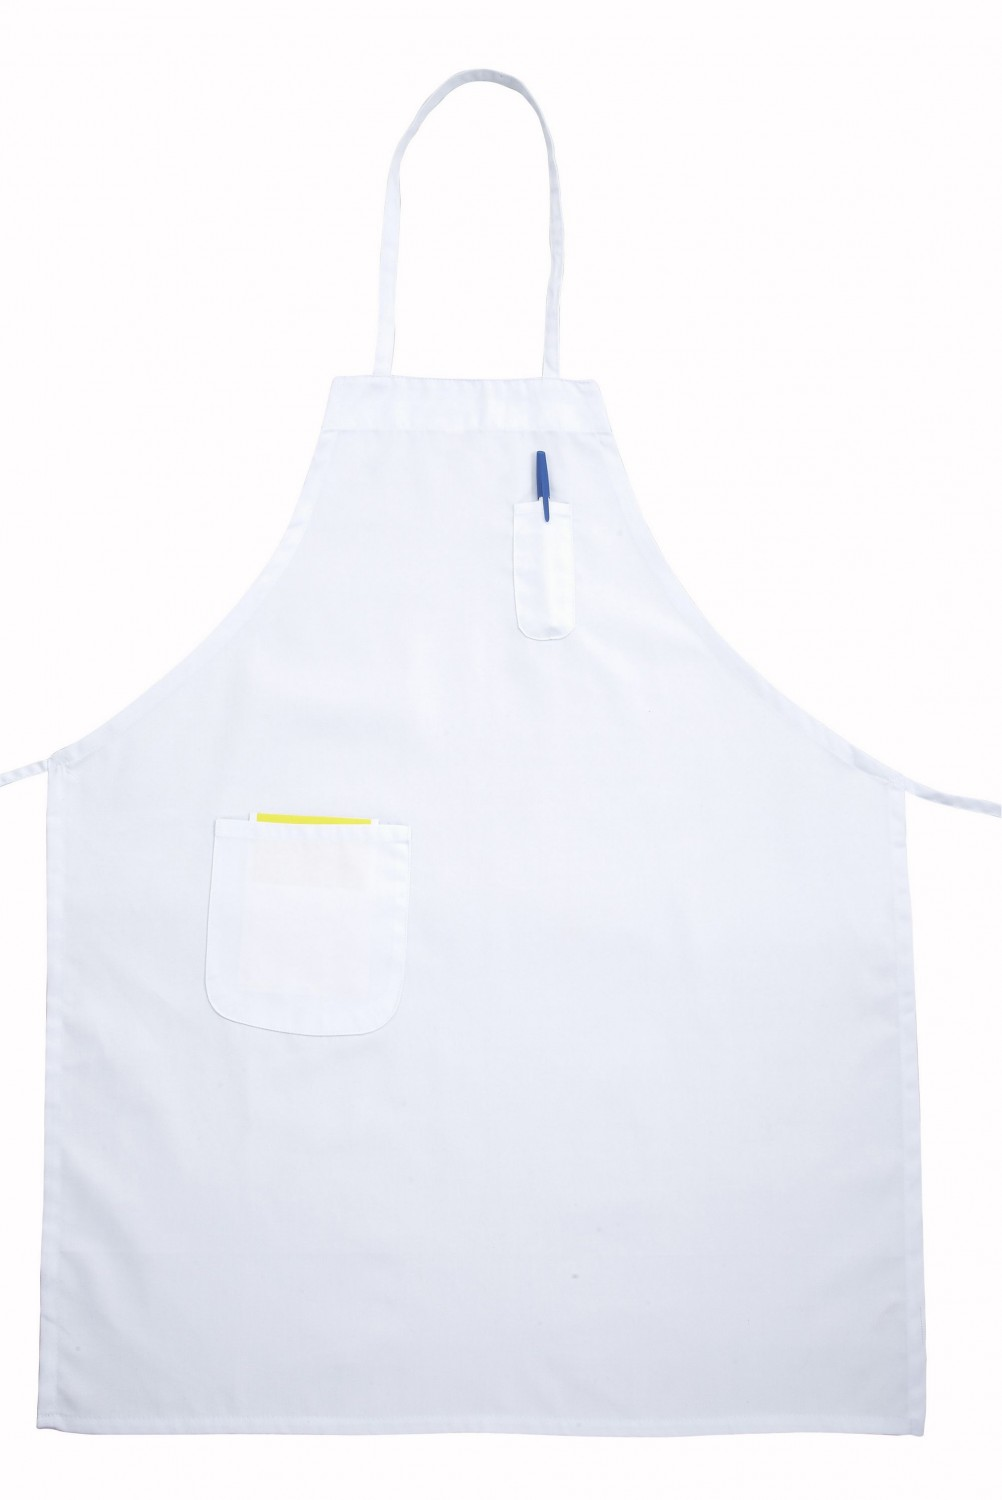 Winco BA-PWH White Full-Length Bib Apron with Pocket